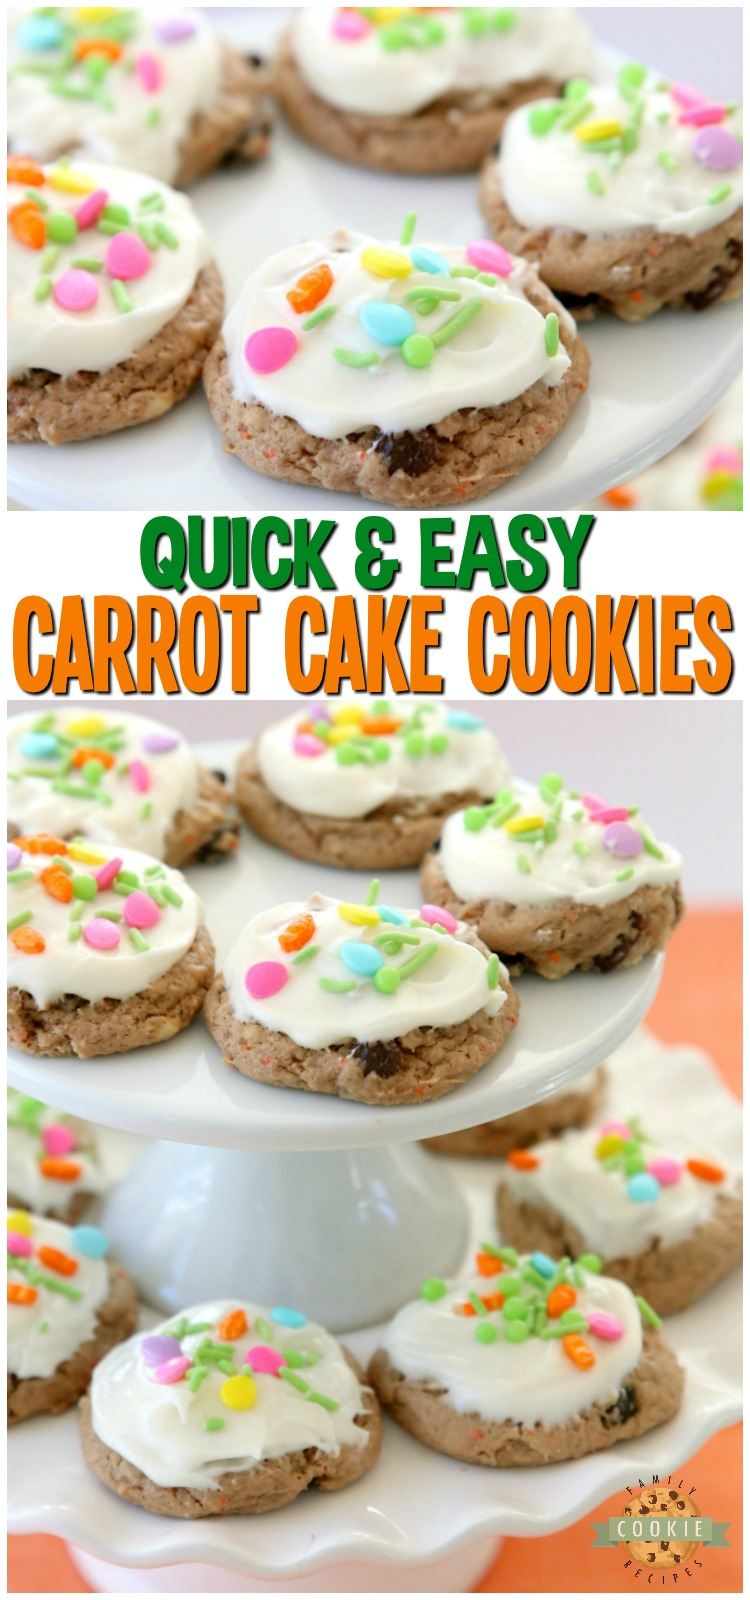 Carrot Cake Cookies are soft and chewy, flavorful carrot cake cookies made with a cake mix! Topped with a creamy cheesecake frosting, these carrot cake cookies are perfect for Easter! #carrotcake #cookies #cakemix #cookie #Spring #Easter #recipe #dessert from FAMILY COOKIE RECIPES